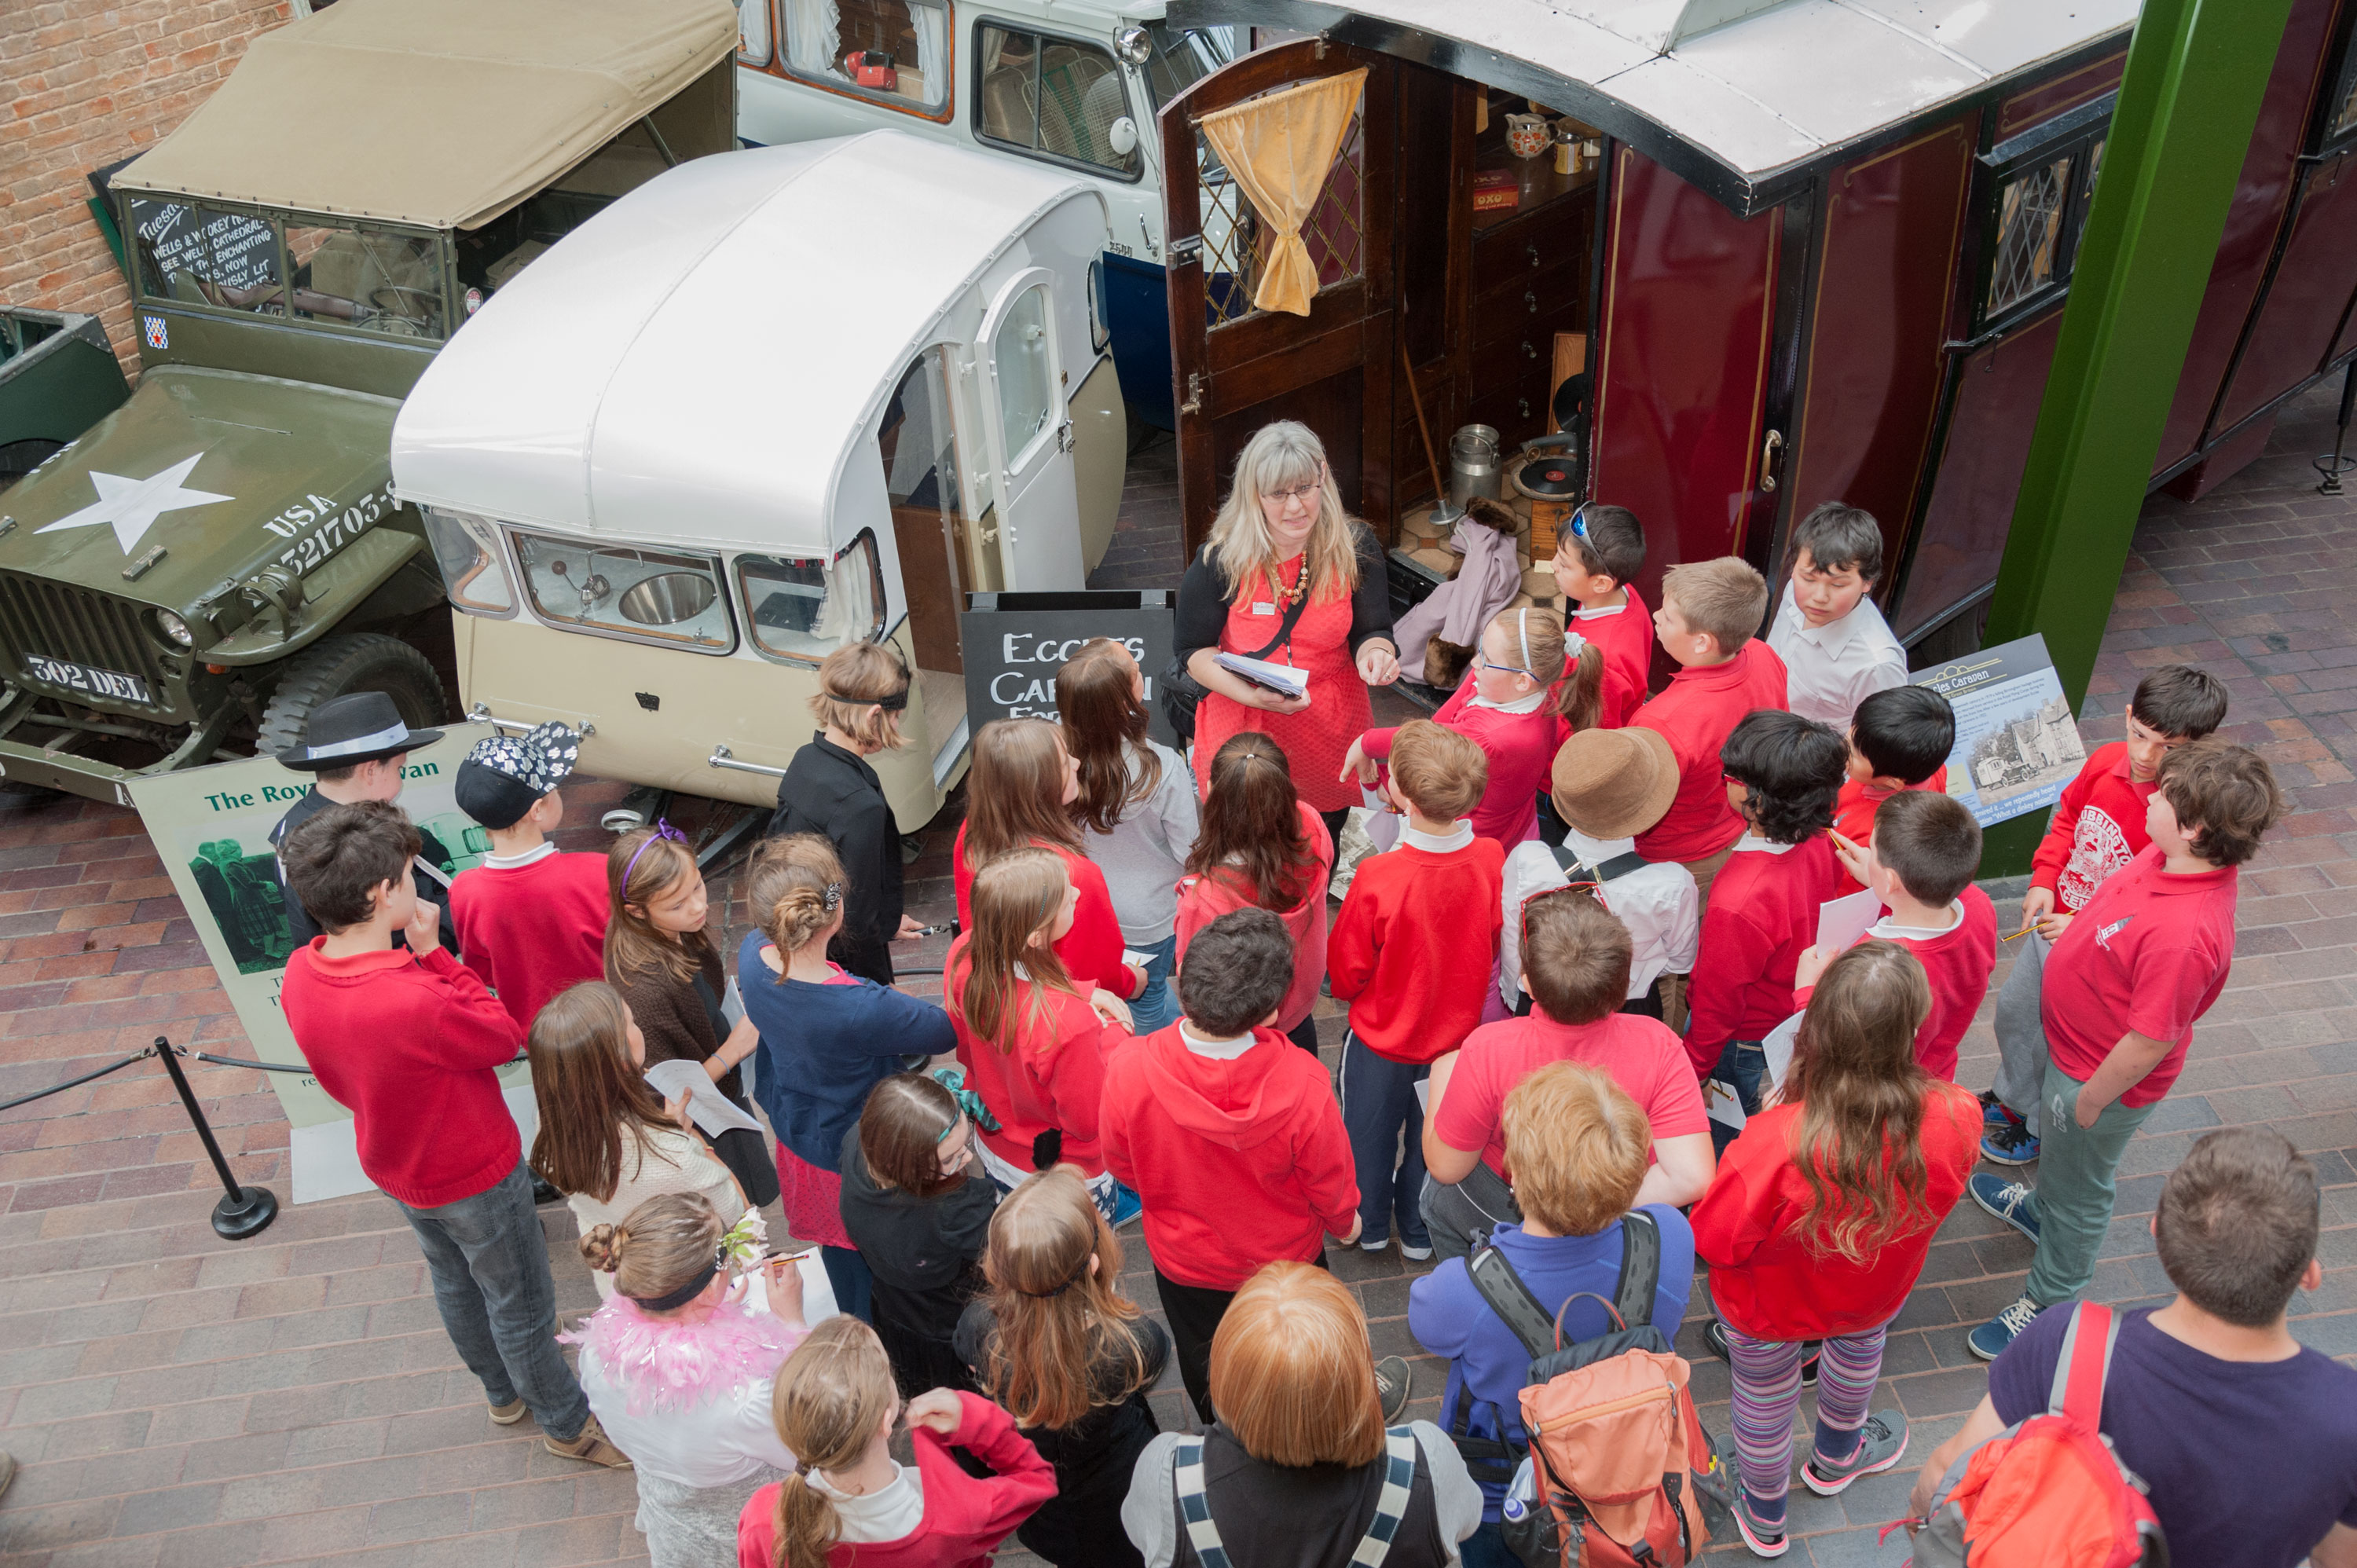 A group of schoolchildren stand next to the Eccles and Royal caravans in the National Motor Museum